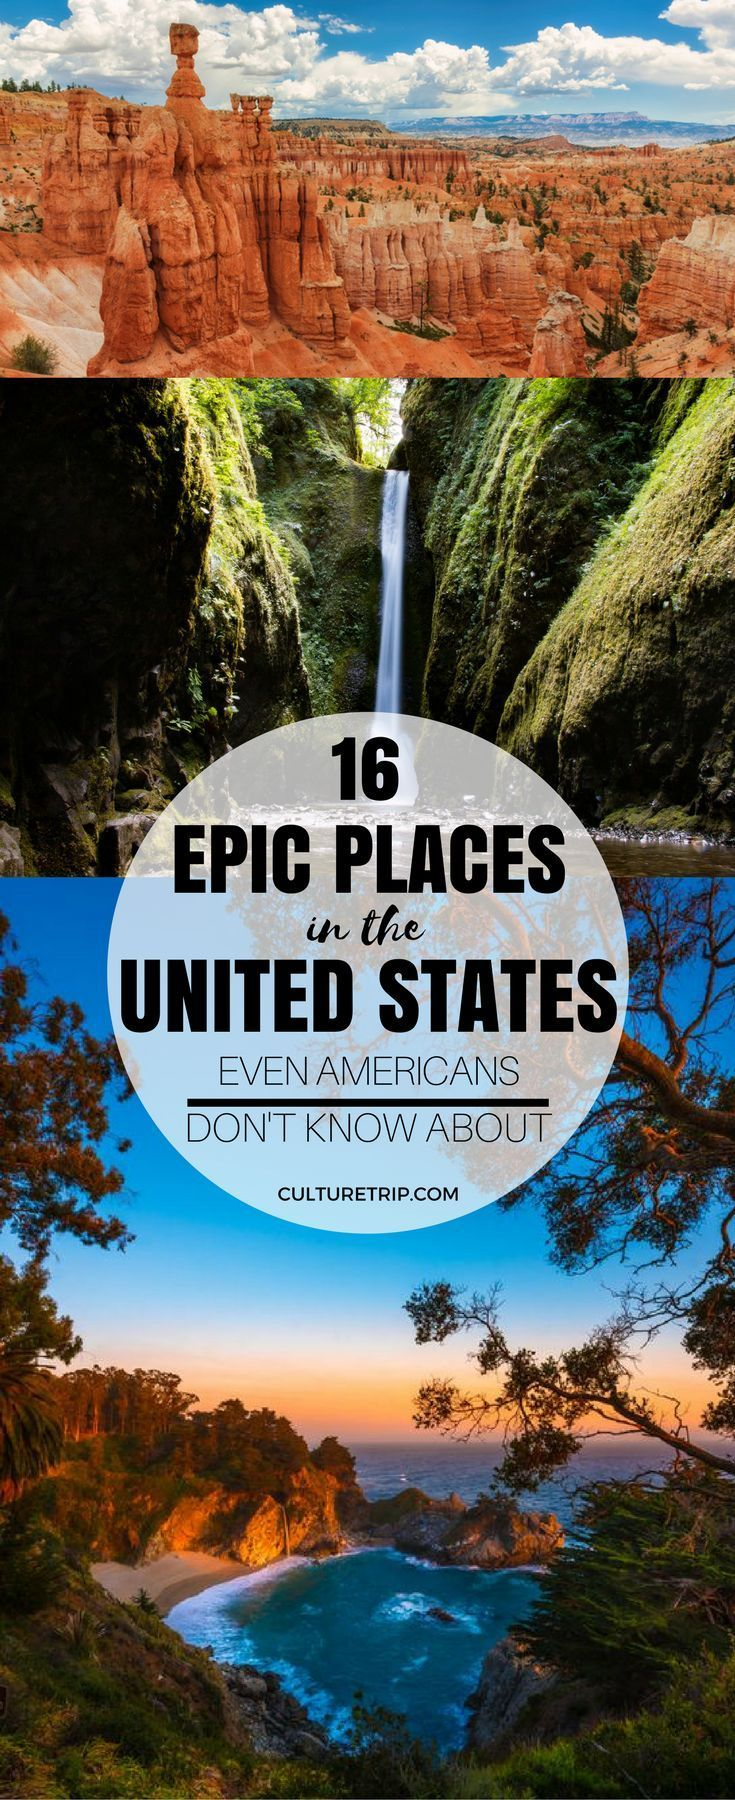 16 Epic Places in the United States Even Americans Don't Know About -   19 travel destinations United States adventure